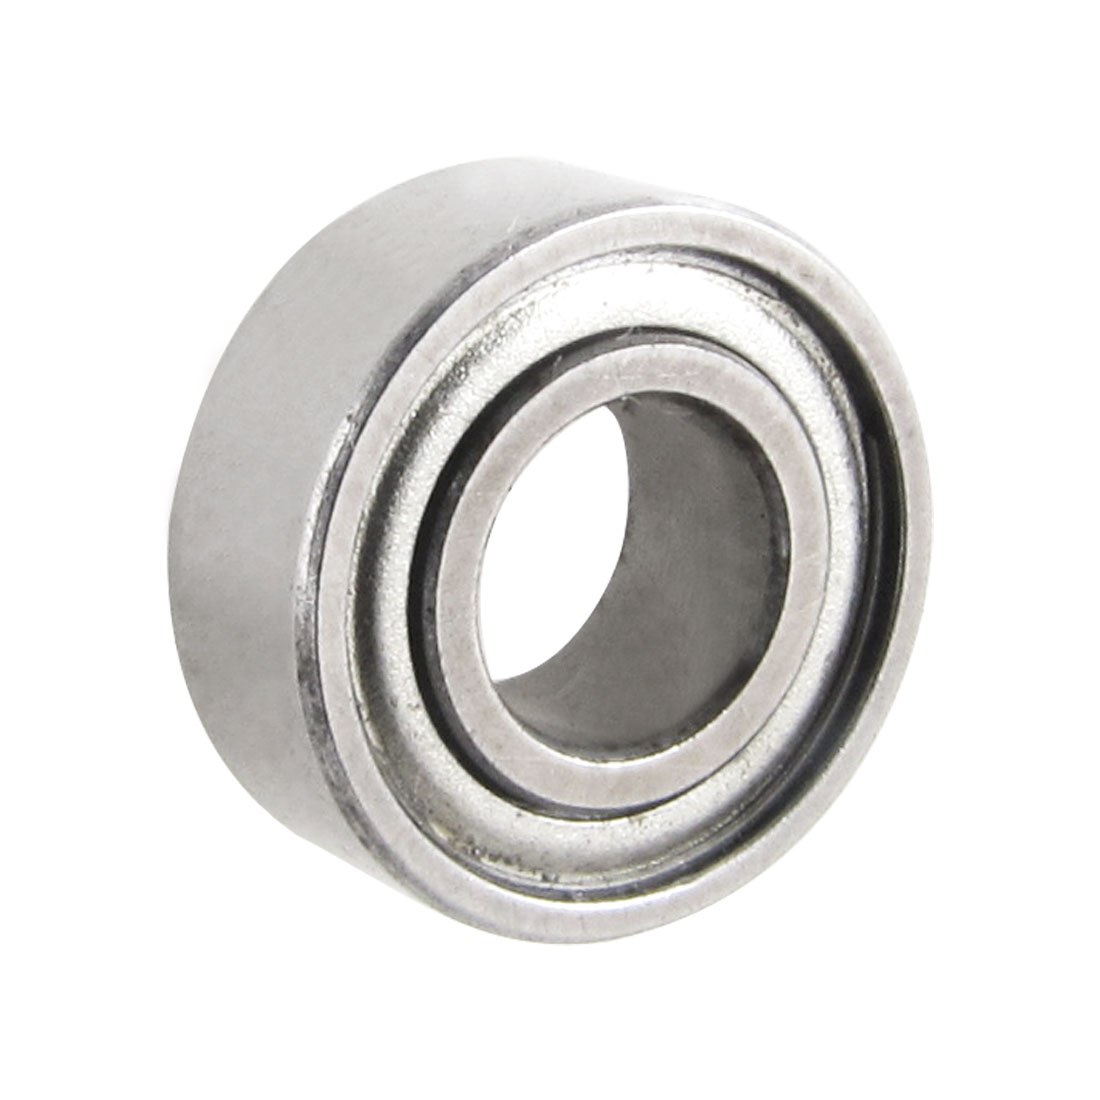 6mm x 13mm x 5mm Shielded Metal Deep Groove Radial Ball Bearing Silver Tone